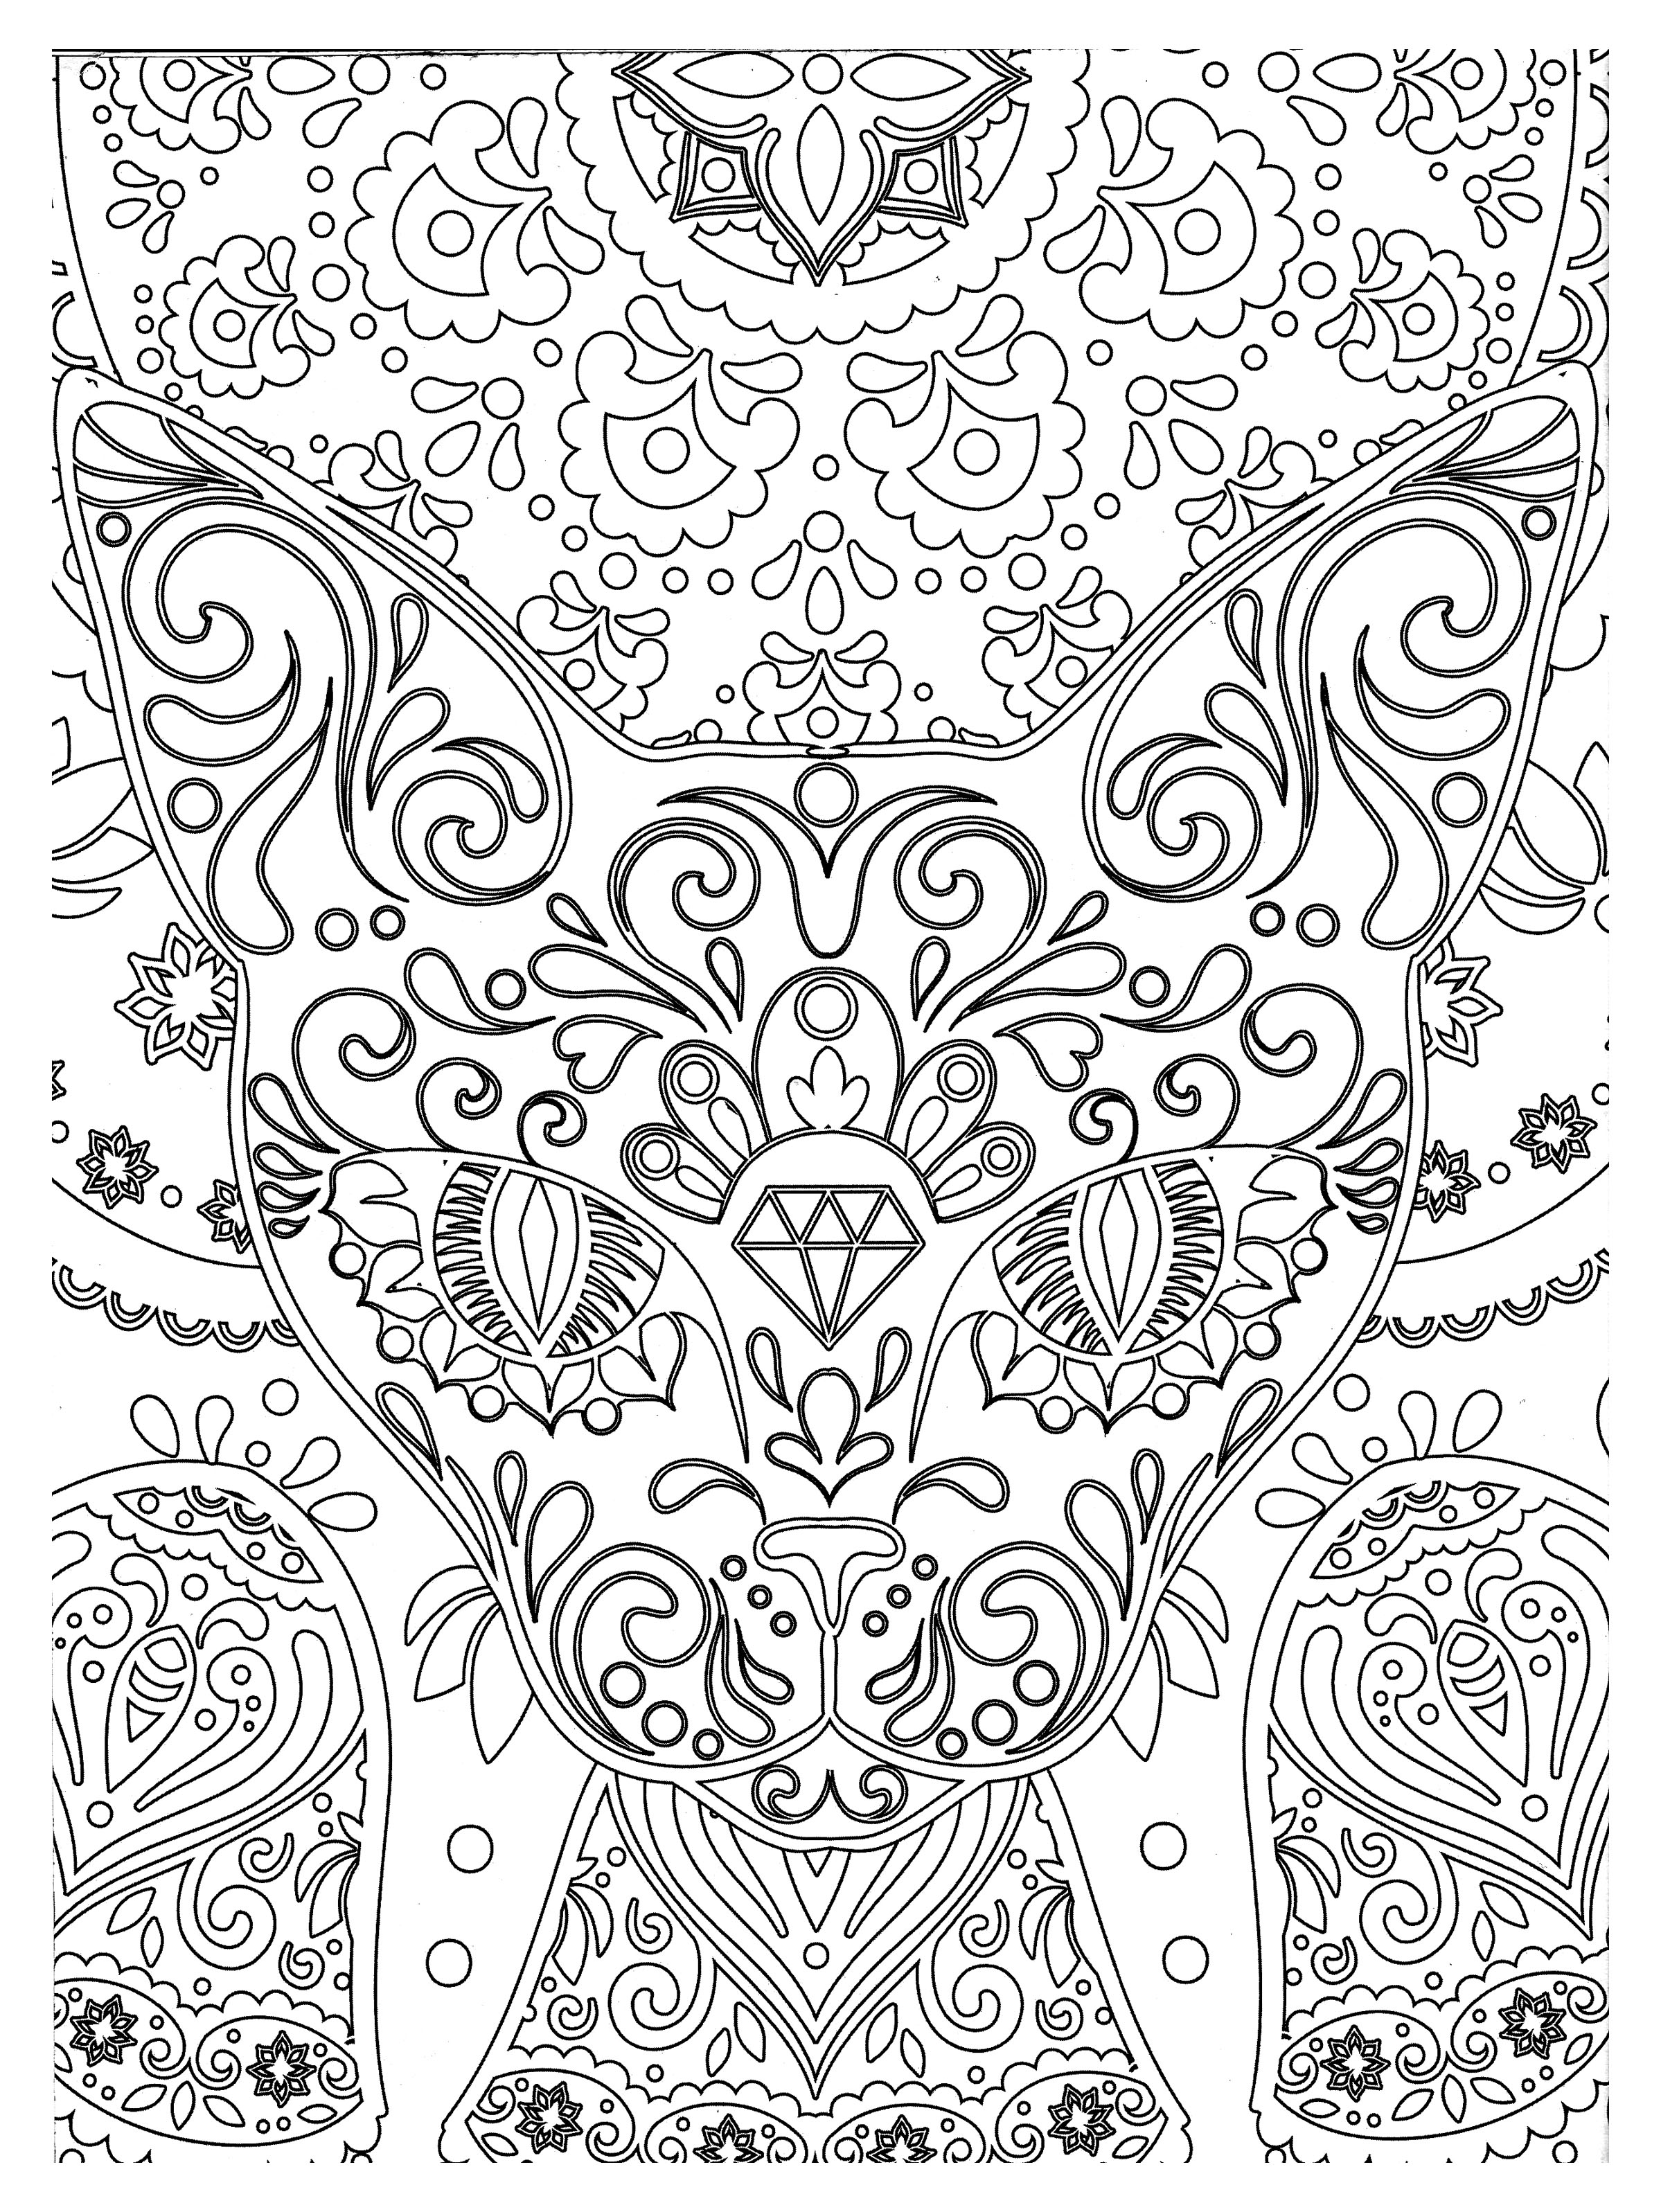 Zen abstrait tete de chat animaux coloriages difficiles pour adultes justcolor - Tete de chat a colorier ...